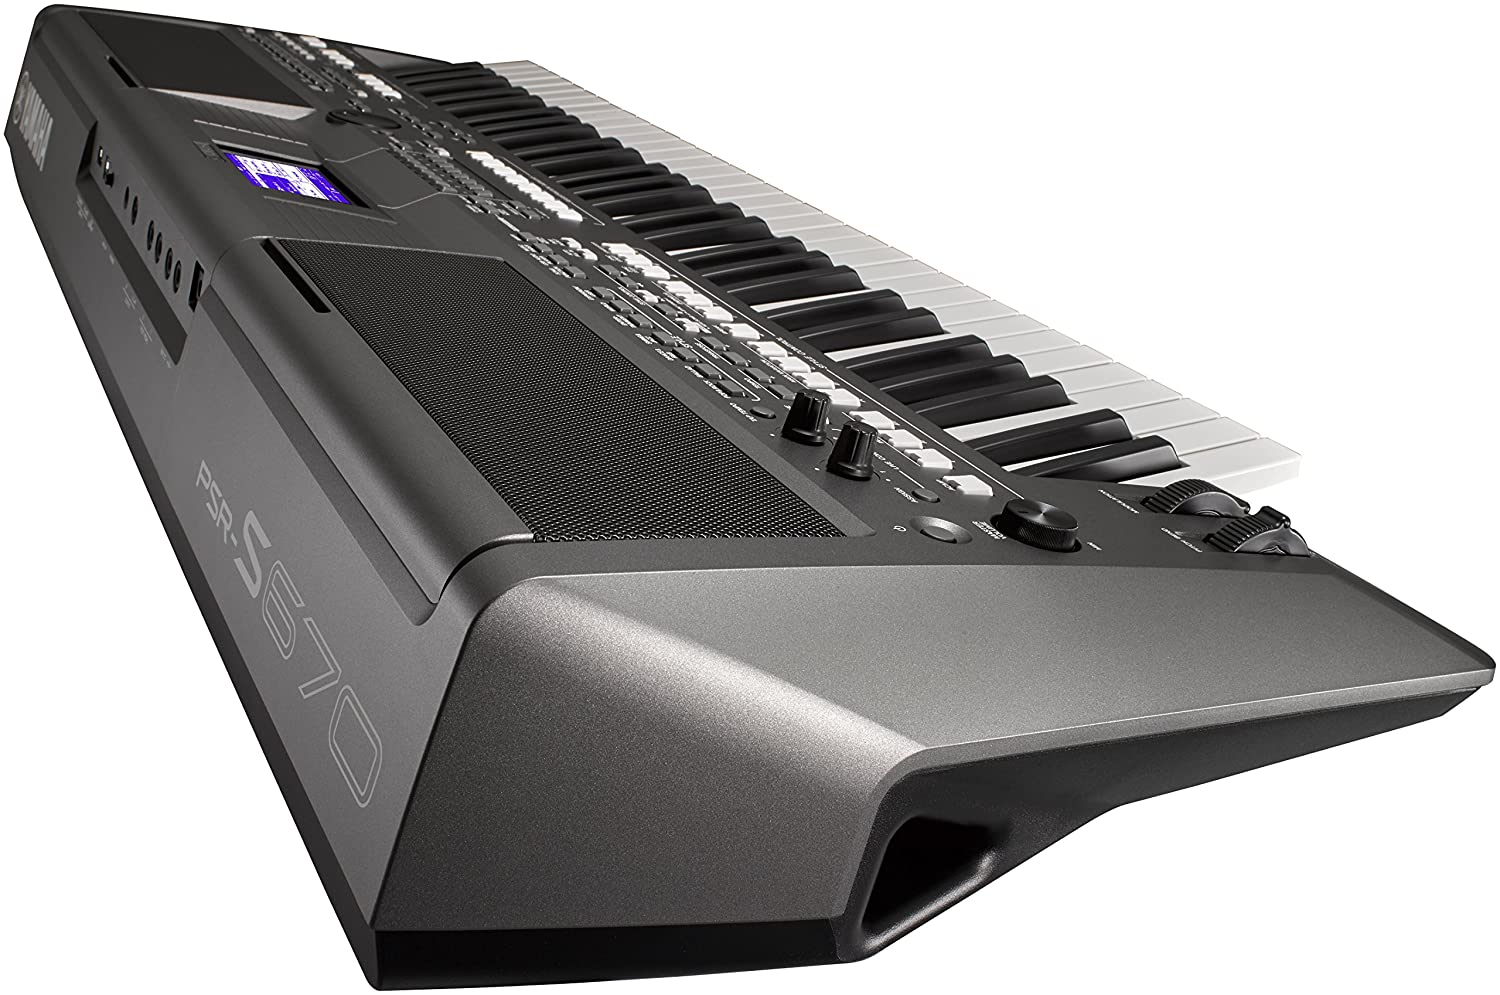 Amazon.com: Yamaha PSR-S670 61-Key Arranger Workstation Keyboard with Onboard Stereo Speakers and MegaVoice Articulation Technology with Keyboard Stand, ...